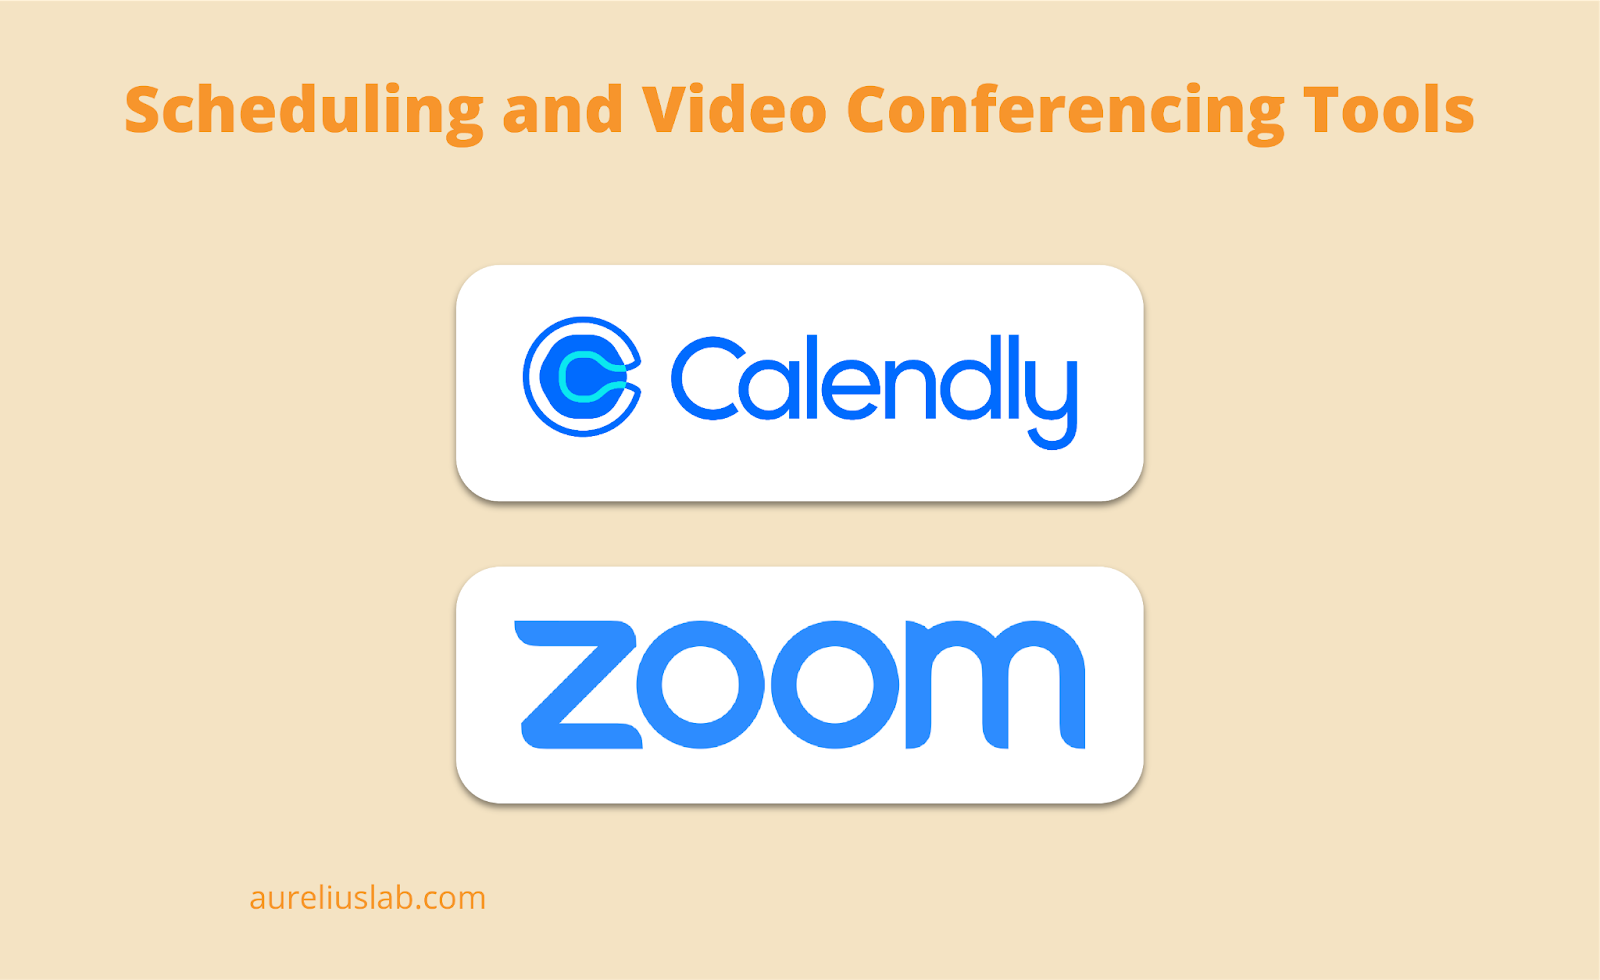 best scheduling and video conferencing tools for UX research